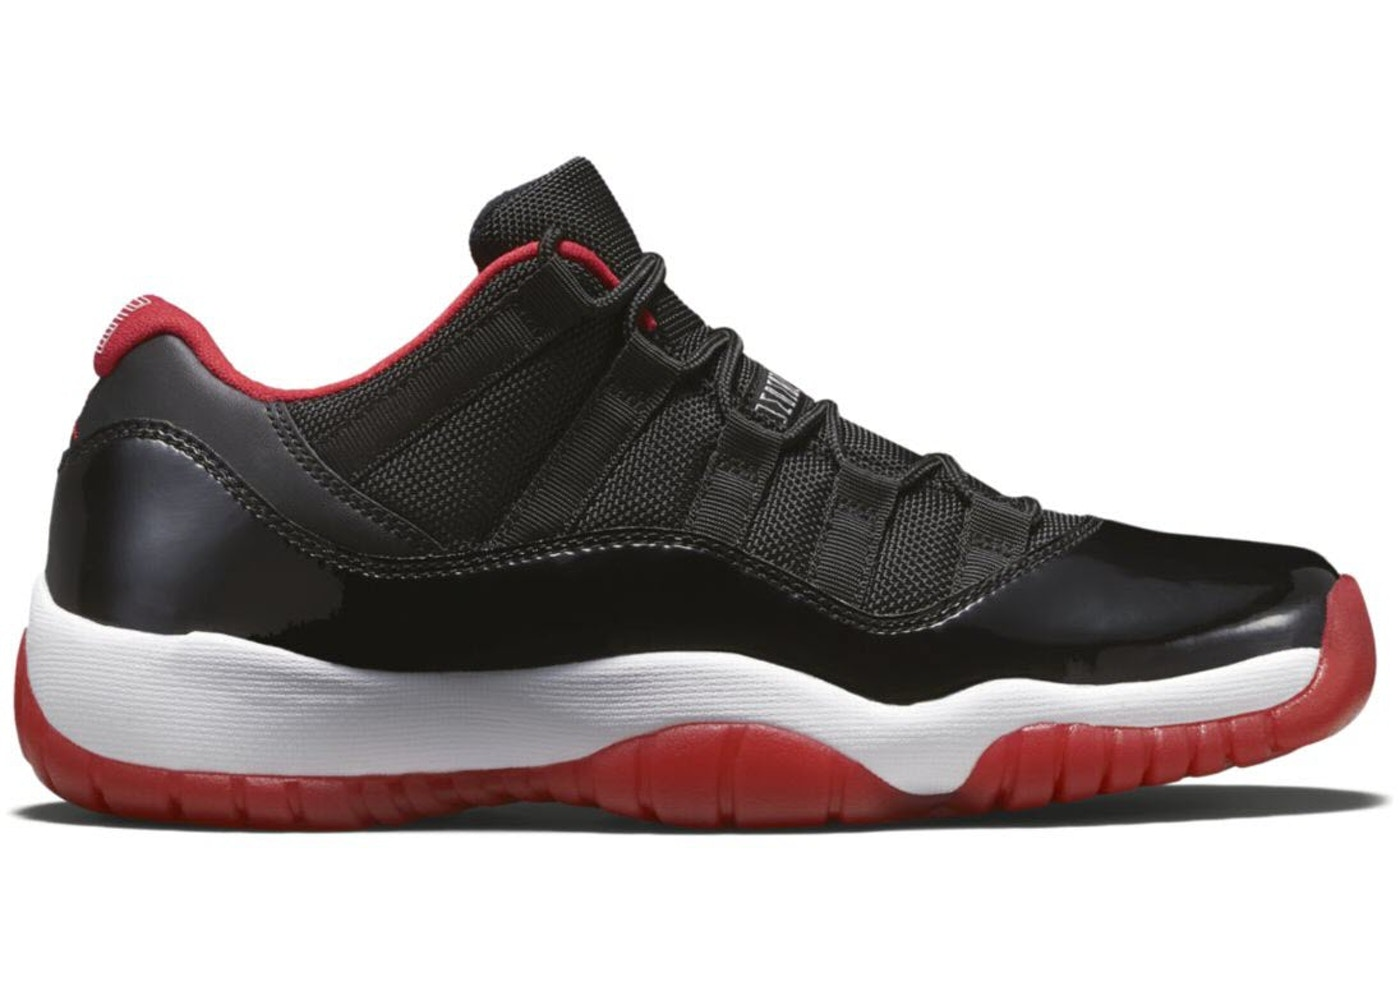 25f6abf592e0 Sell. or Ask. Size  5Y. View All Bids. Jordan 11 Retro Low Bred ...